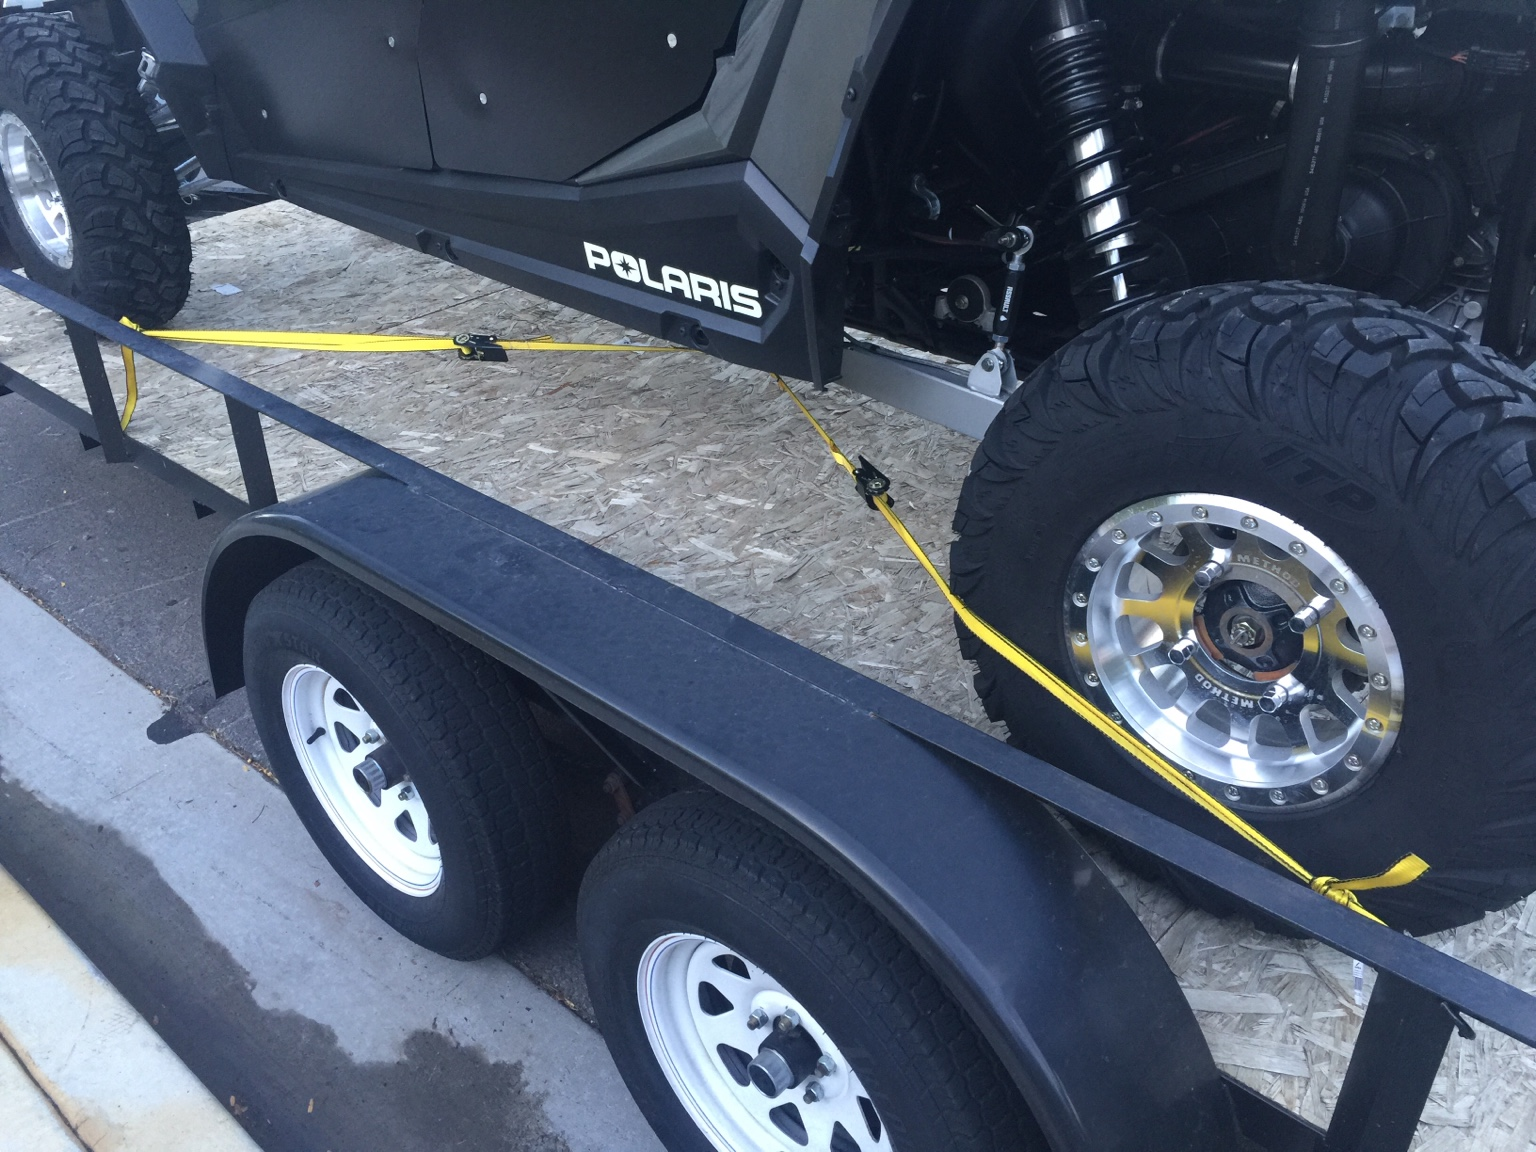 What's your Rzr tie down set up? - Page 10 - Polaris RZR